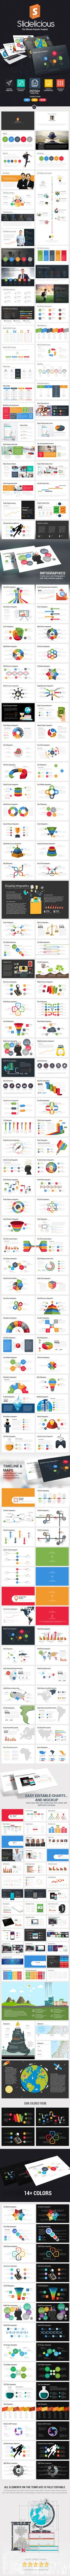 Slidelicious -The Ultimate Keynote Presentation  - Business Keynote Templates Download here : https://graphicriver.net/item/slidelicious-the-ultimate-keynote-presentation-/12927520?s_rank=1038&ref=Al-fatih